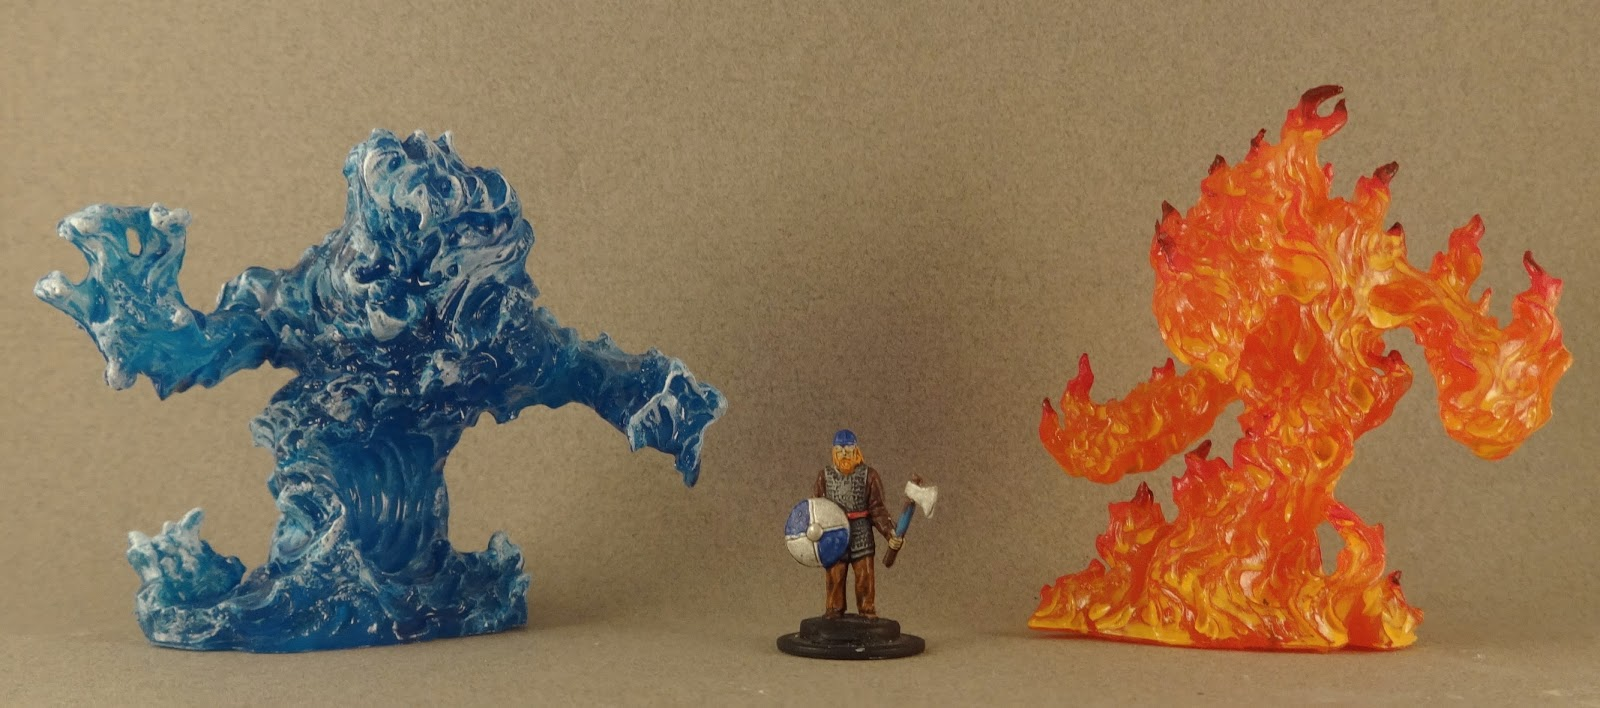 Blue Fire Miniature Painting